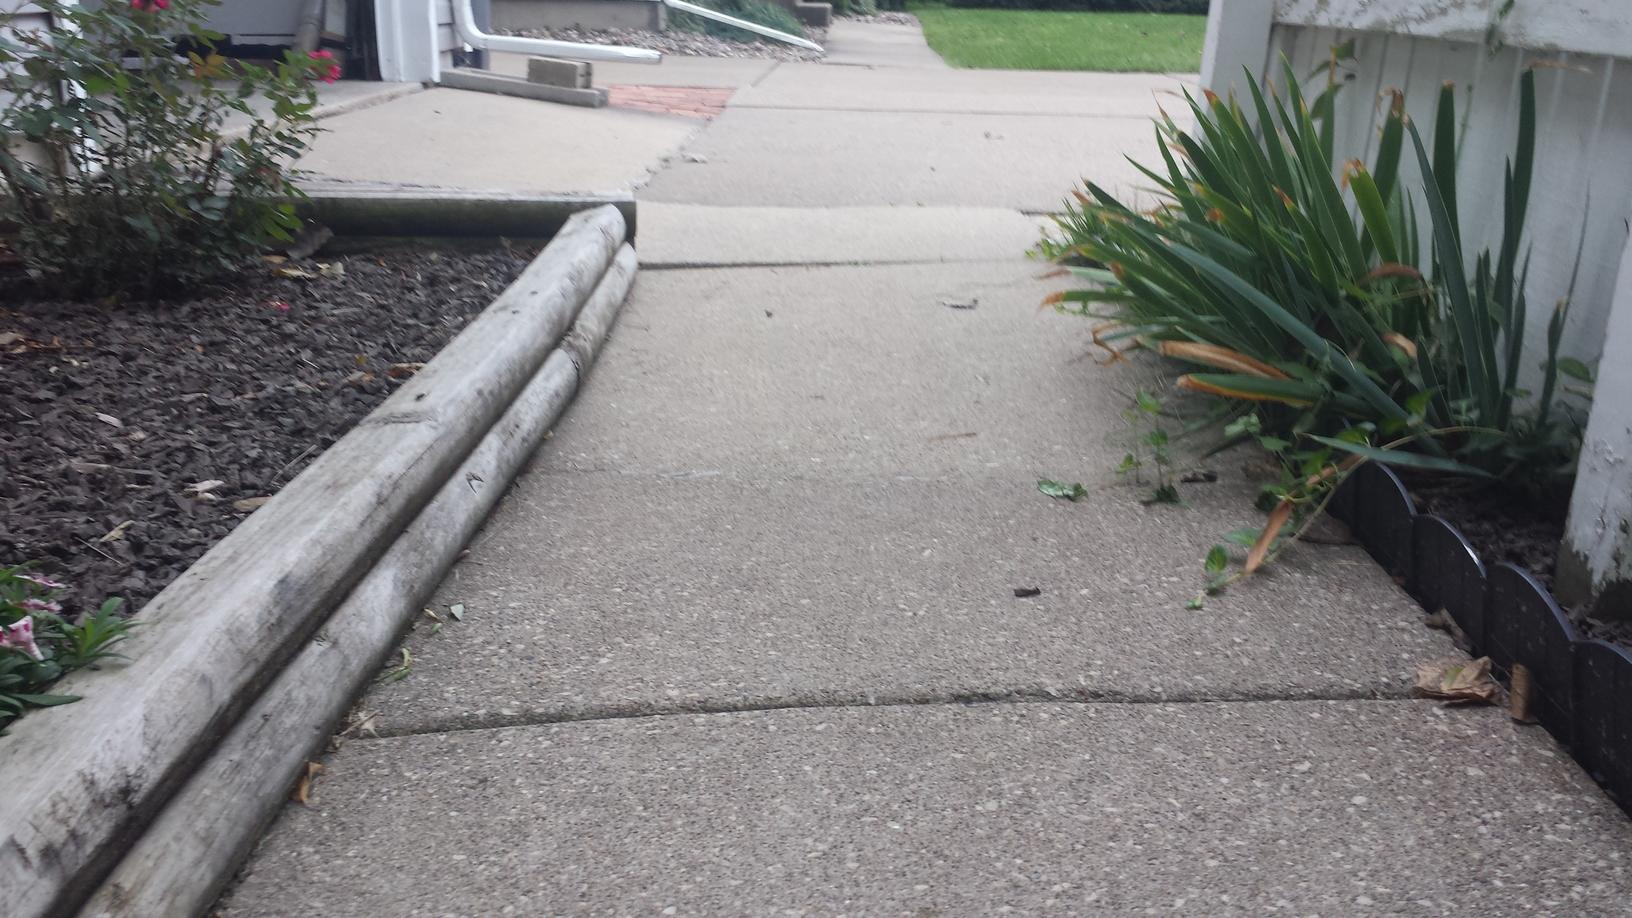 The cracking and sealing of the sidewalk was causing the joints to expand in between each slab.